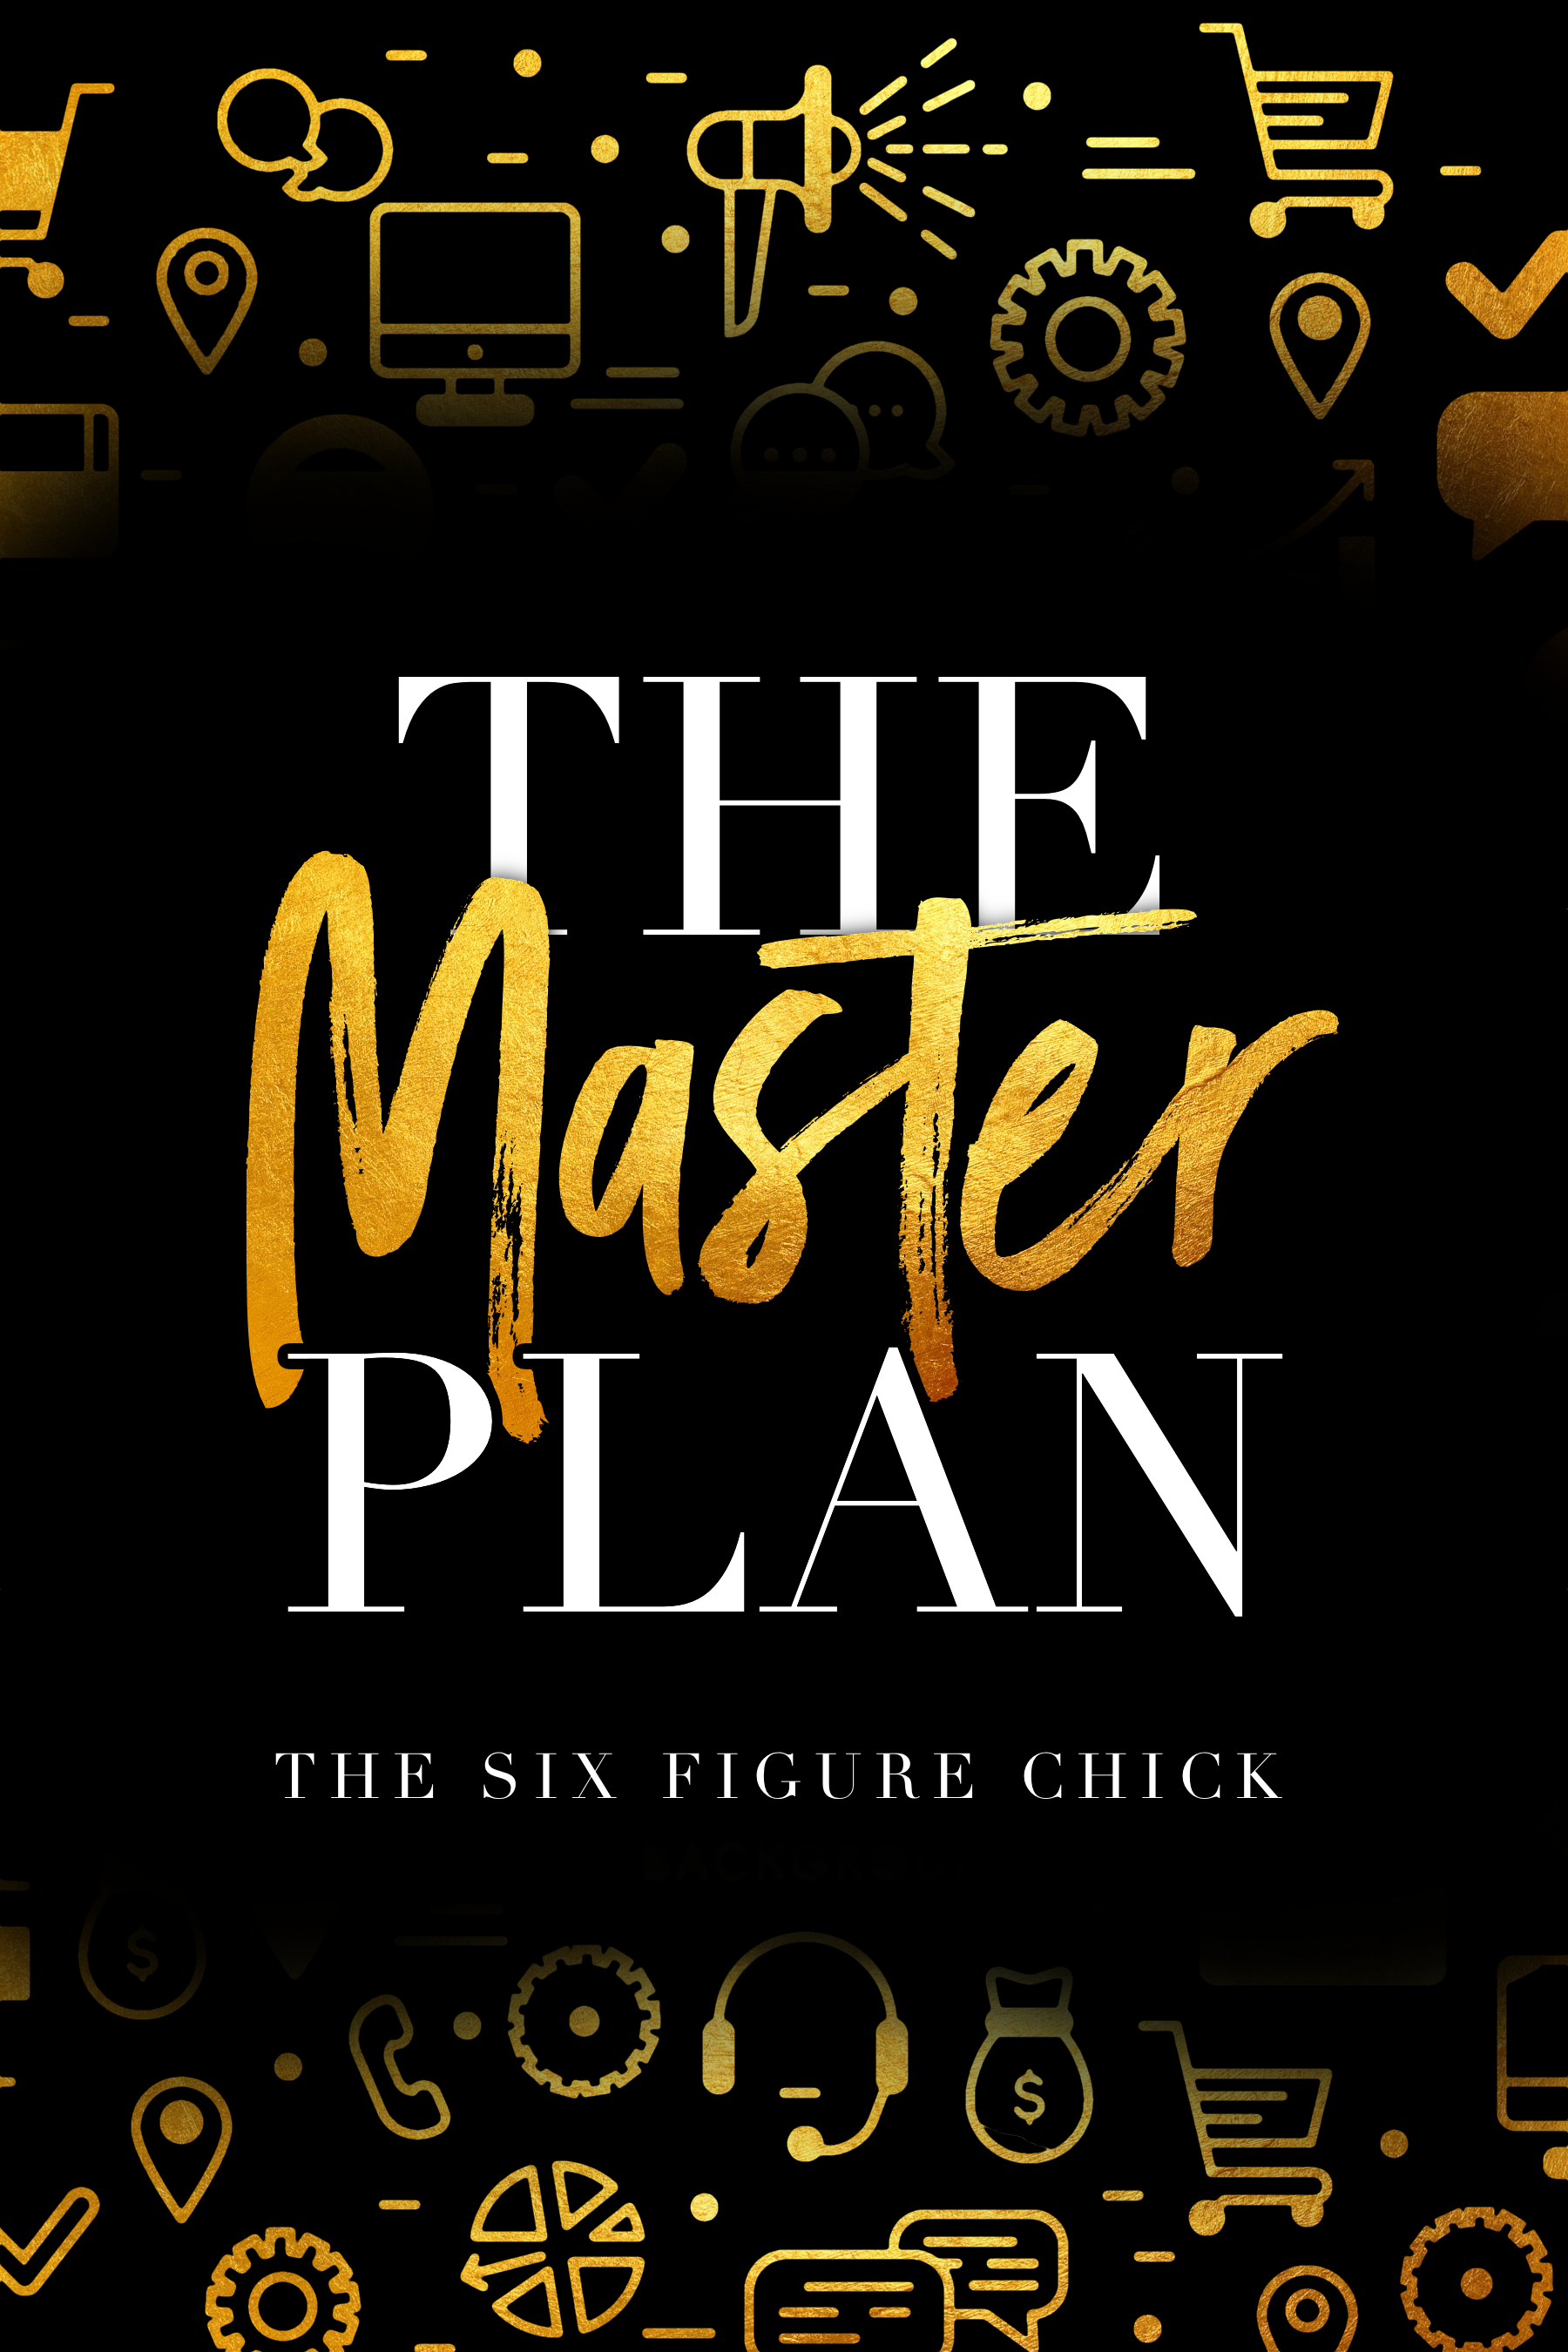 Six Figure Chick Master Plan Cover PNG.png